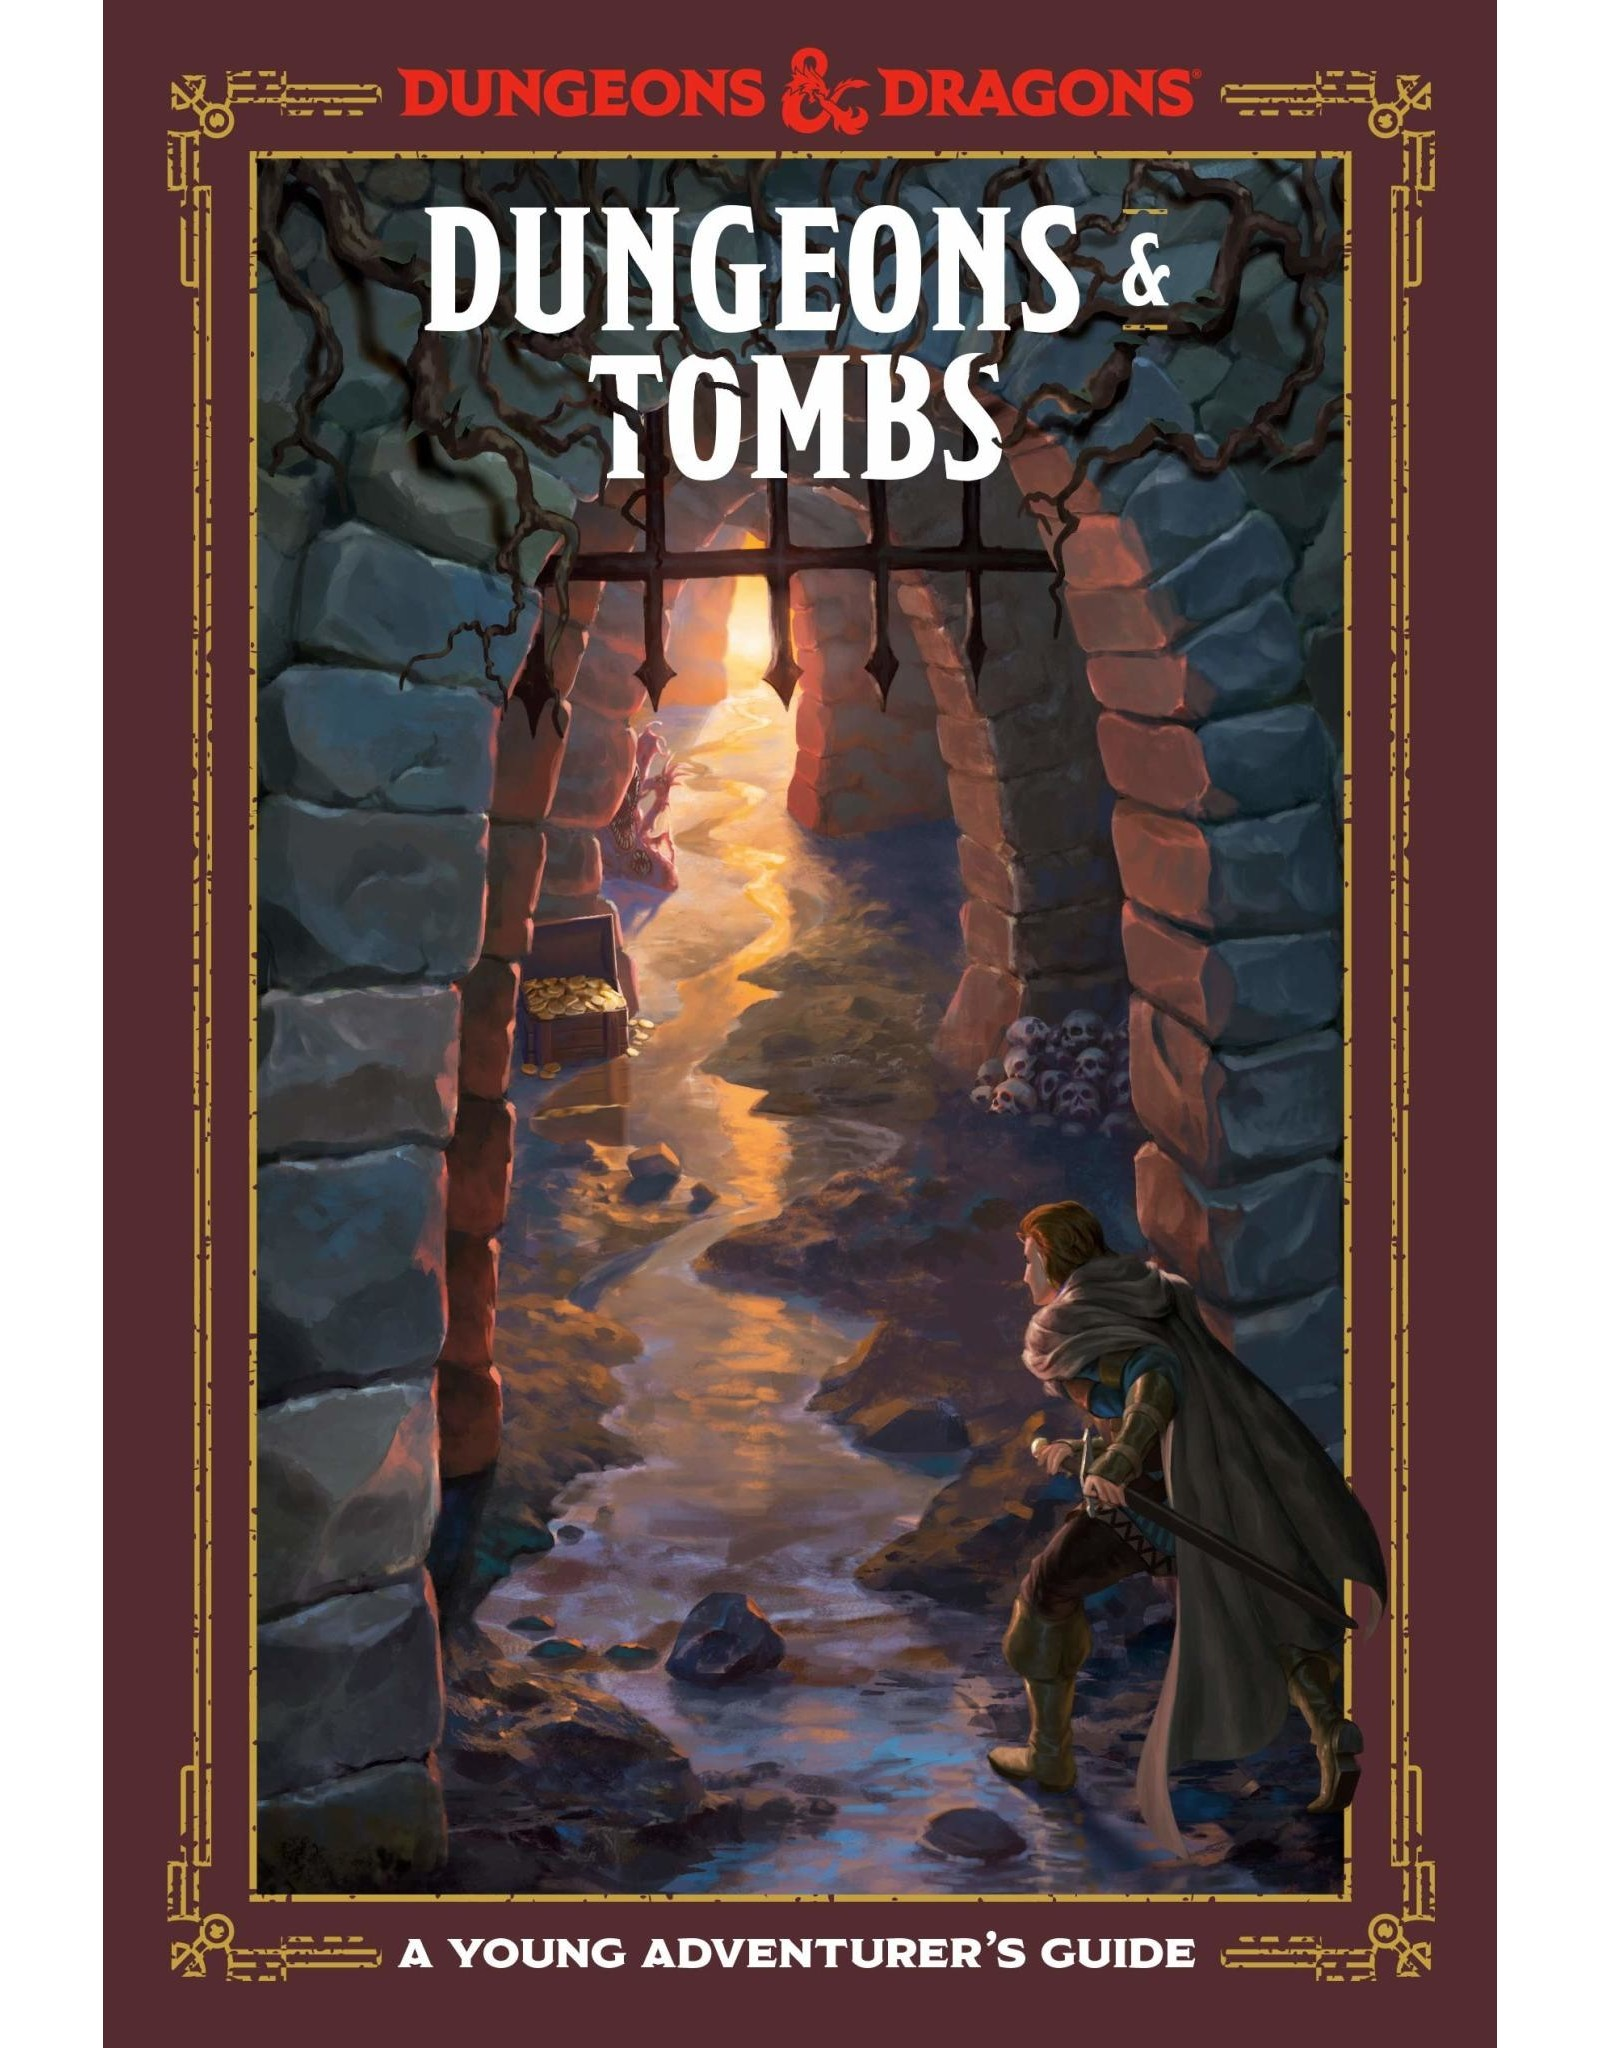 Dungeons & Dragons RPG: Dragons and Tombs